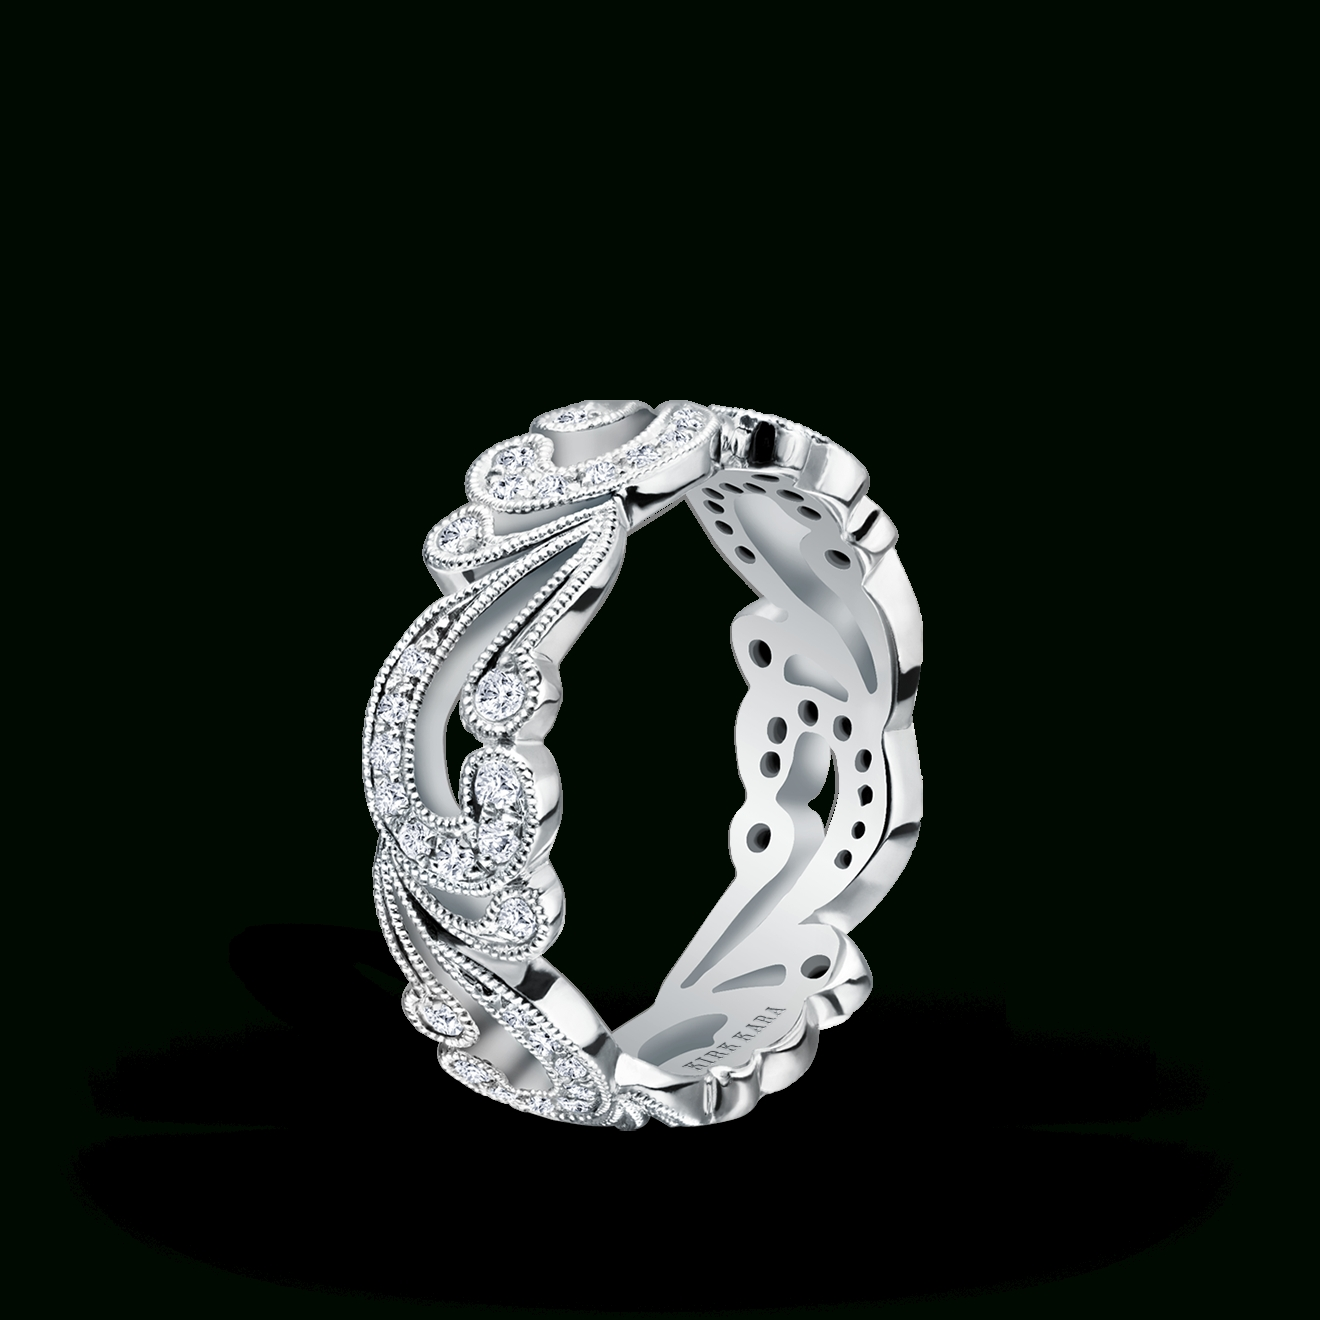 Designer Diamond Wedding & Anniversary Bands For Women | Kirk Kara Intended For Most Up To Date Diamond Anniversary Rings For Women (View 8 of 25)